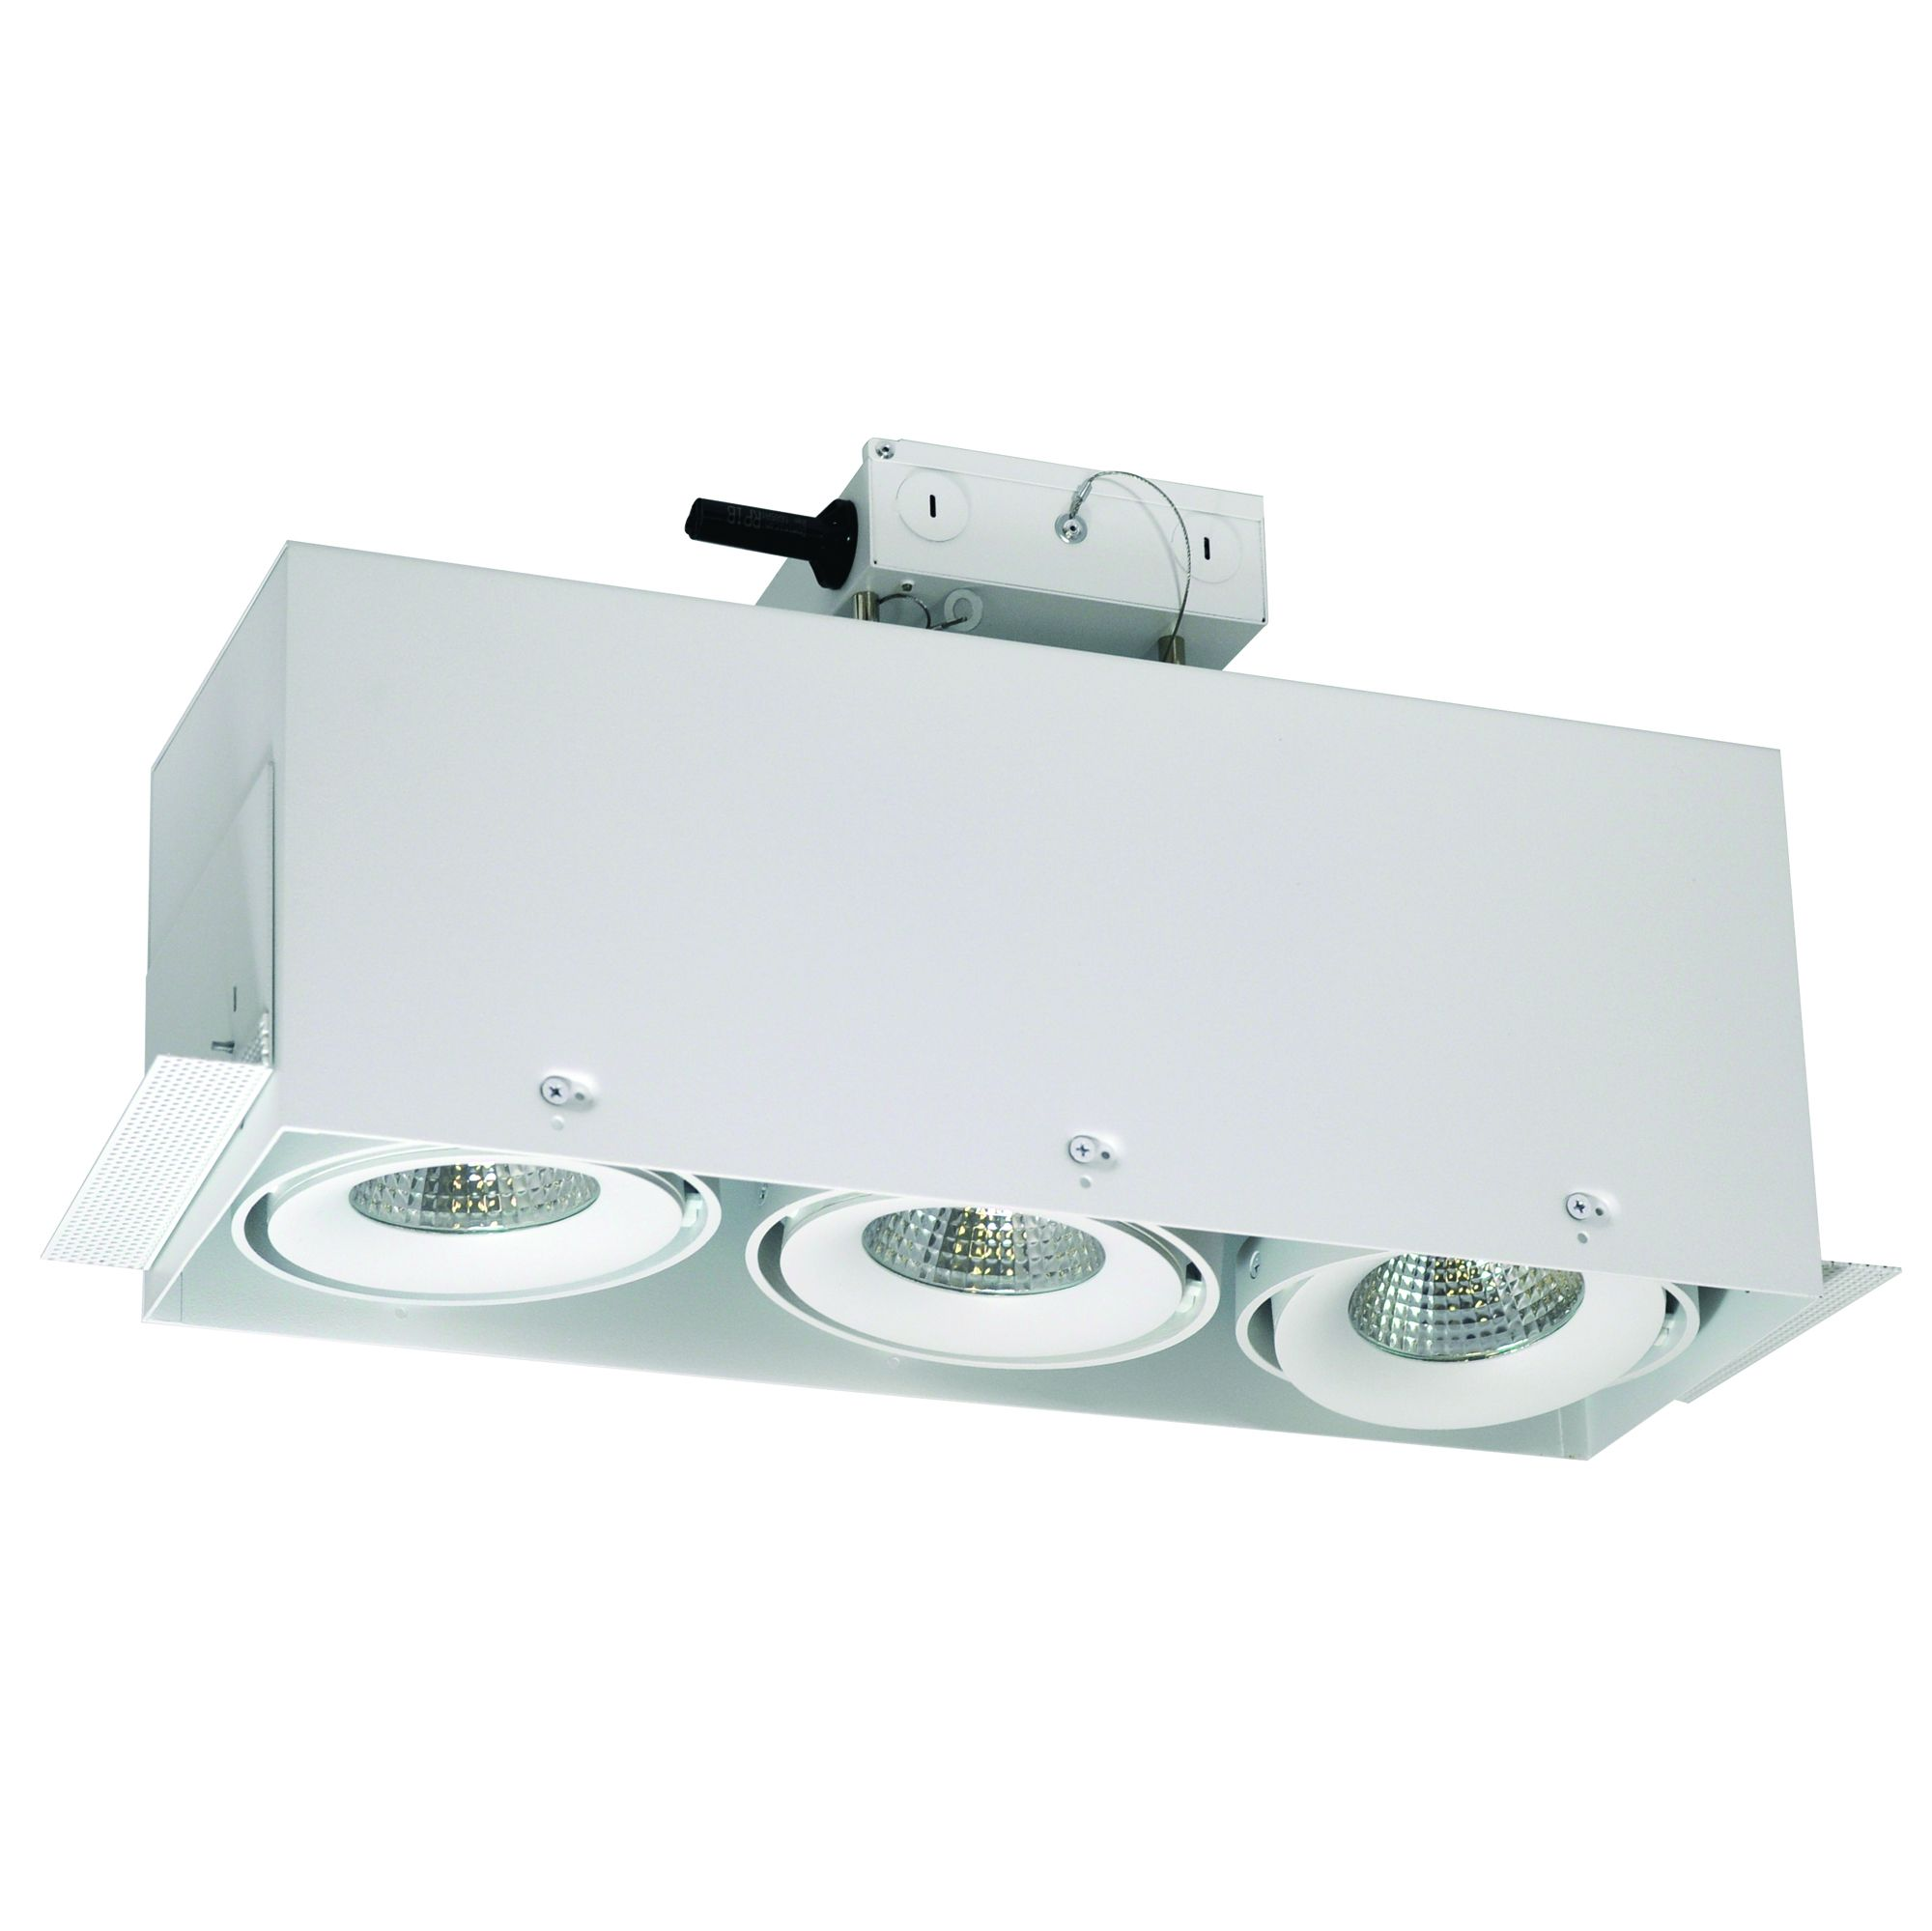 Alcon Lighting 14026 3 Adjule Trimless Multiple Led Dimmable Recessed Rectangular System